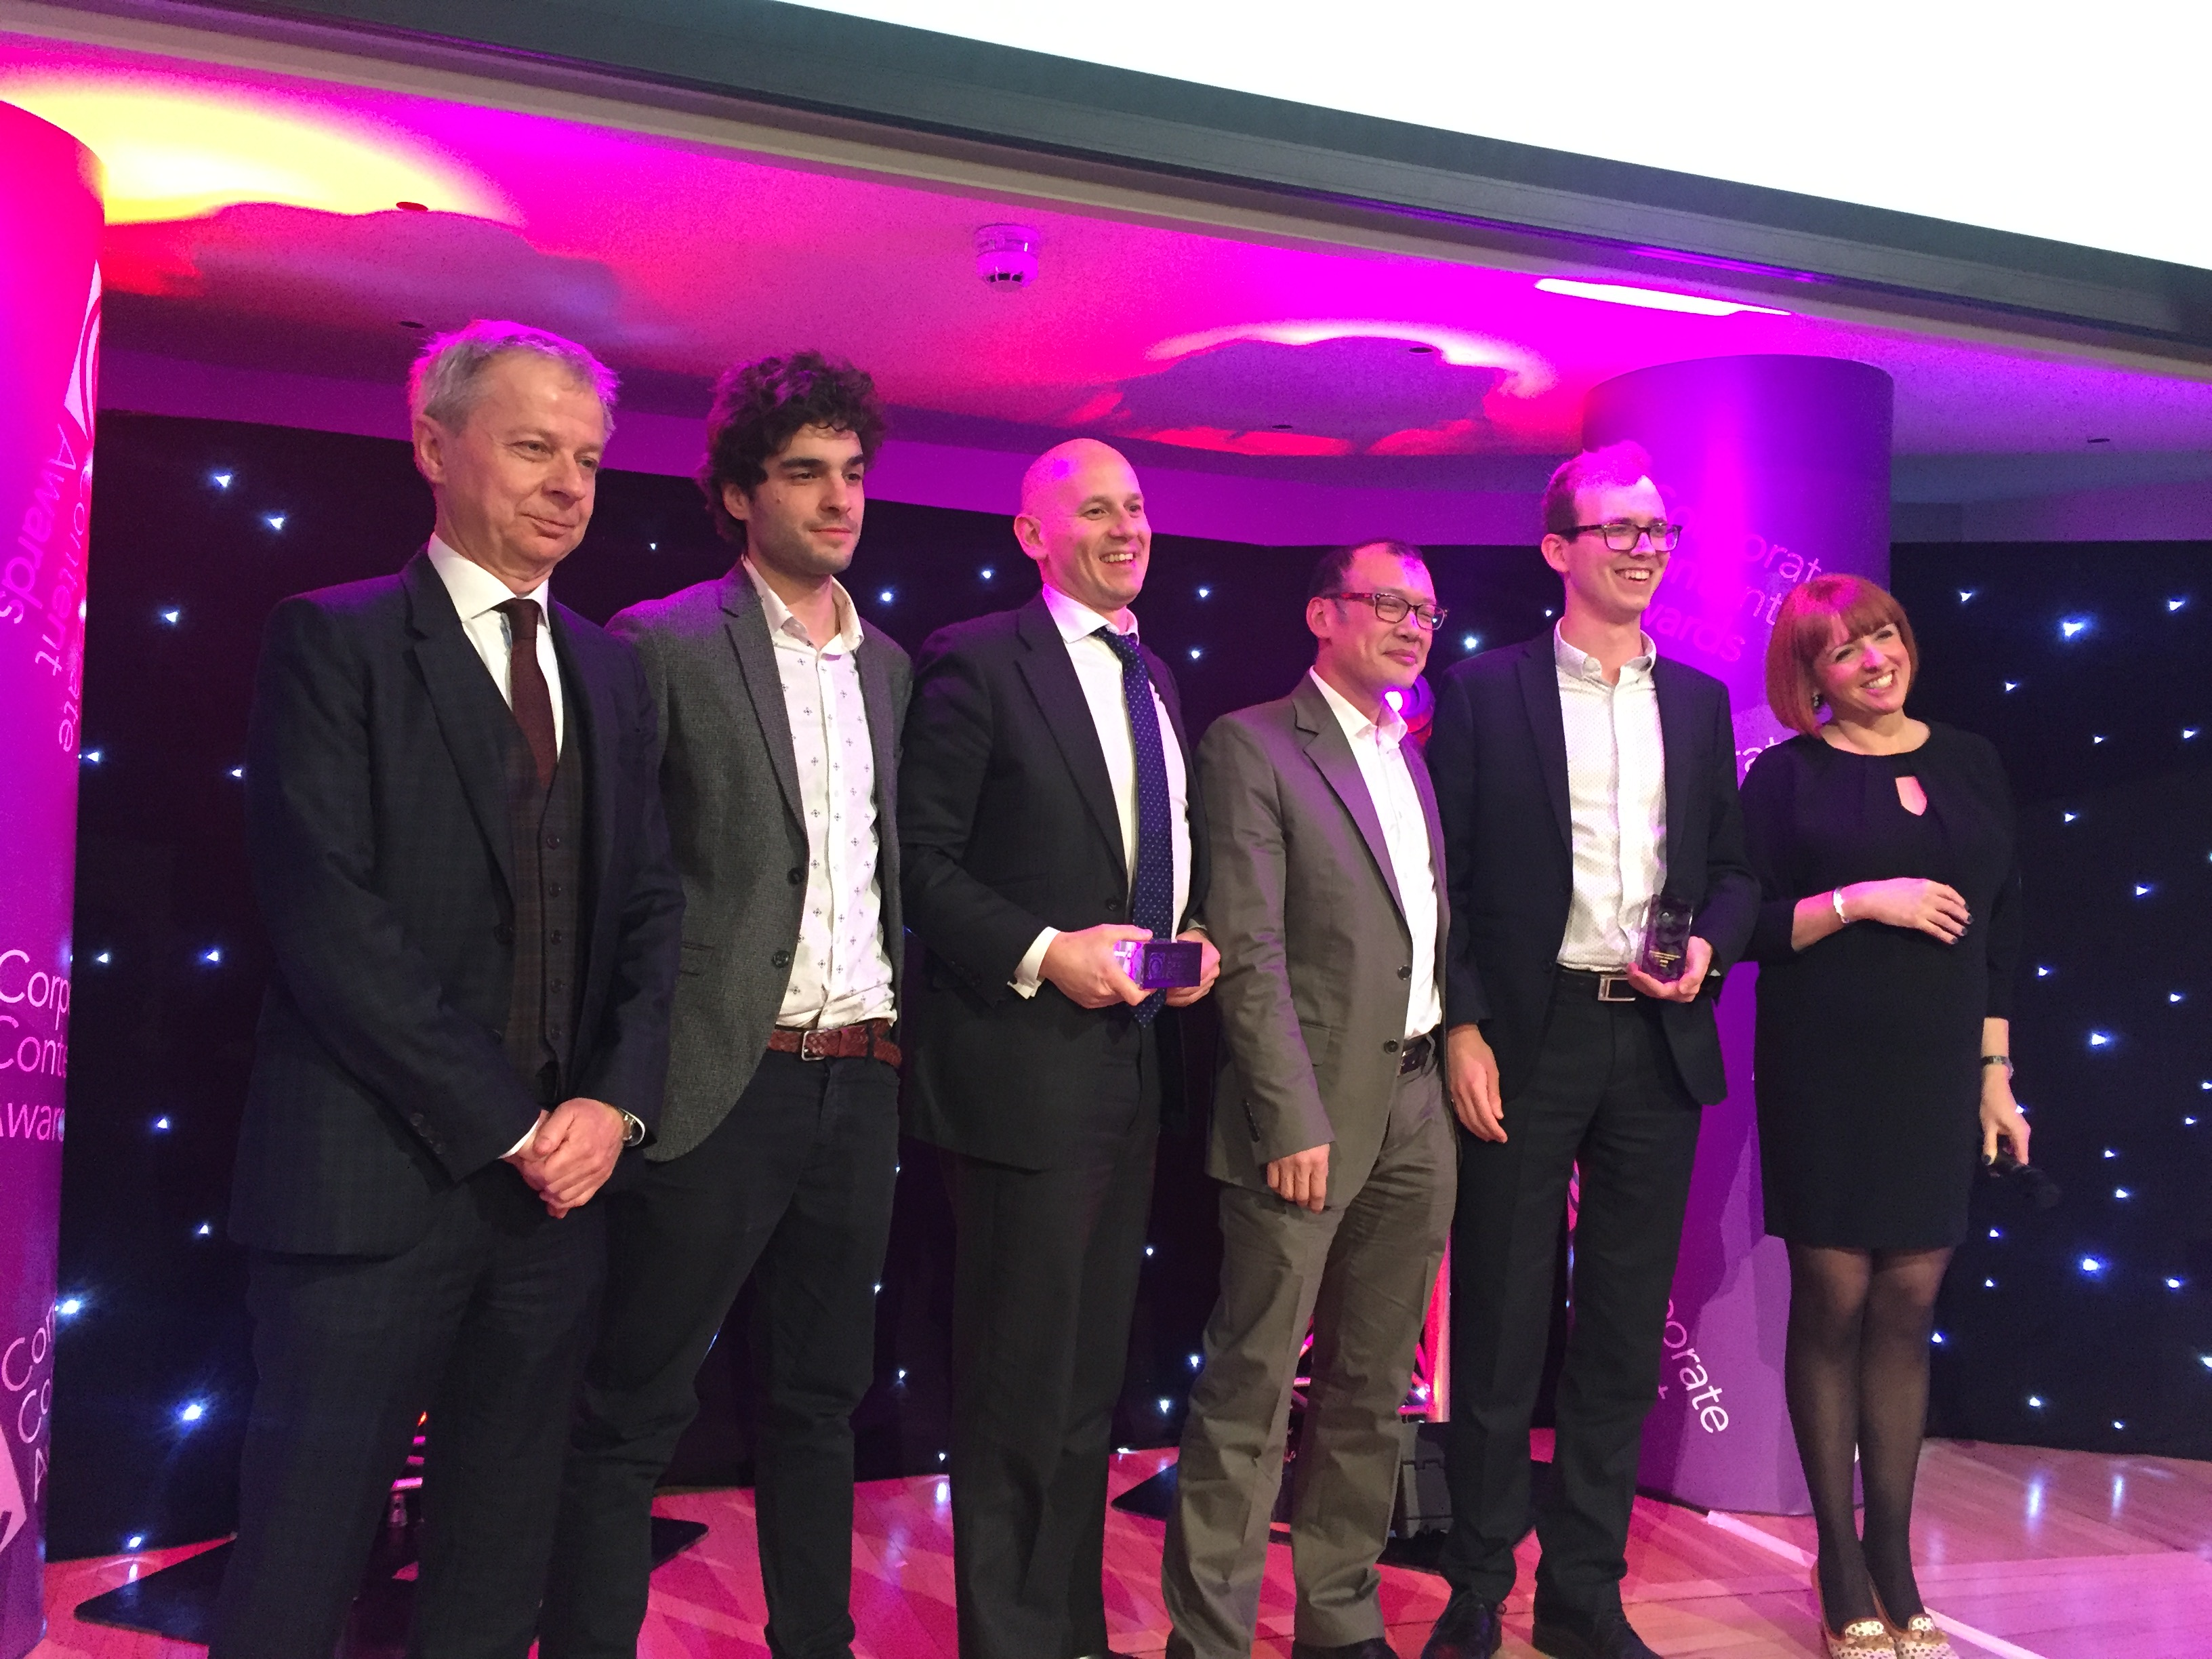 Corporate Content awards in London